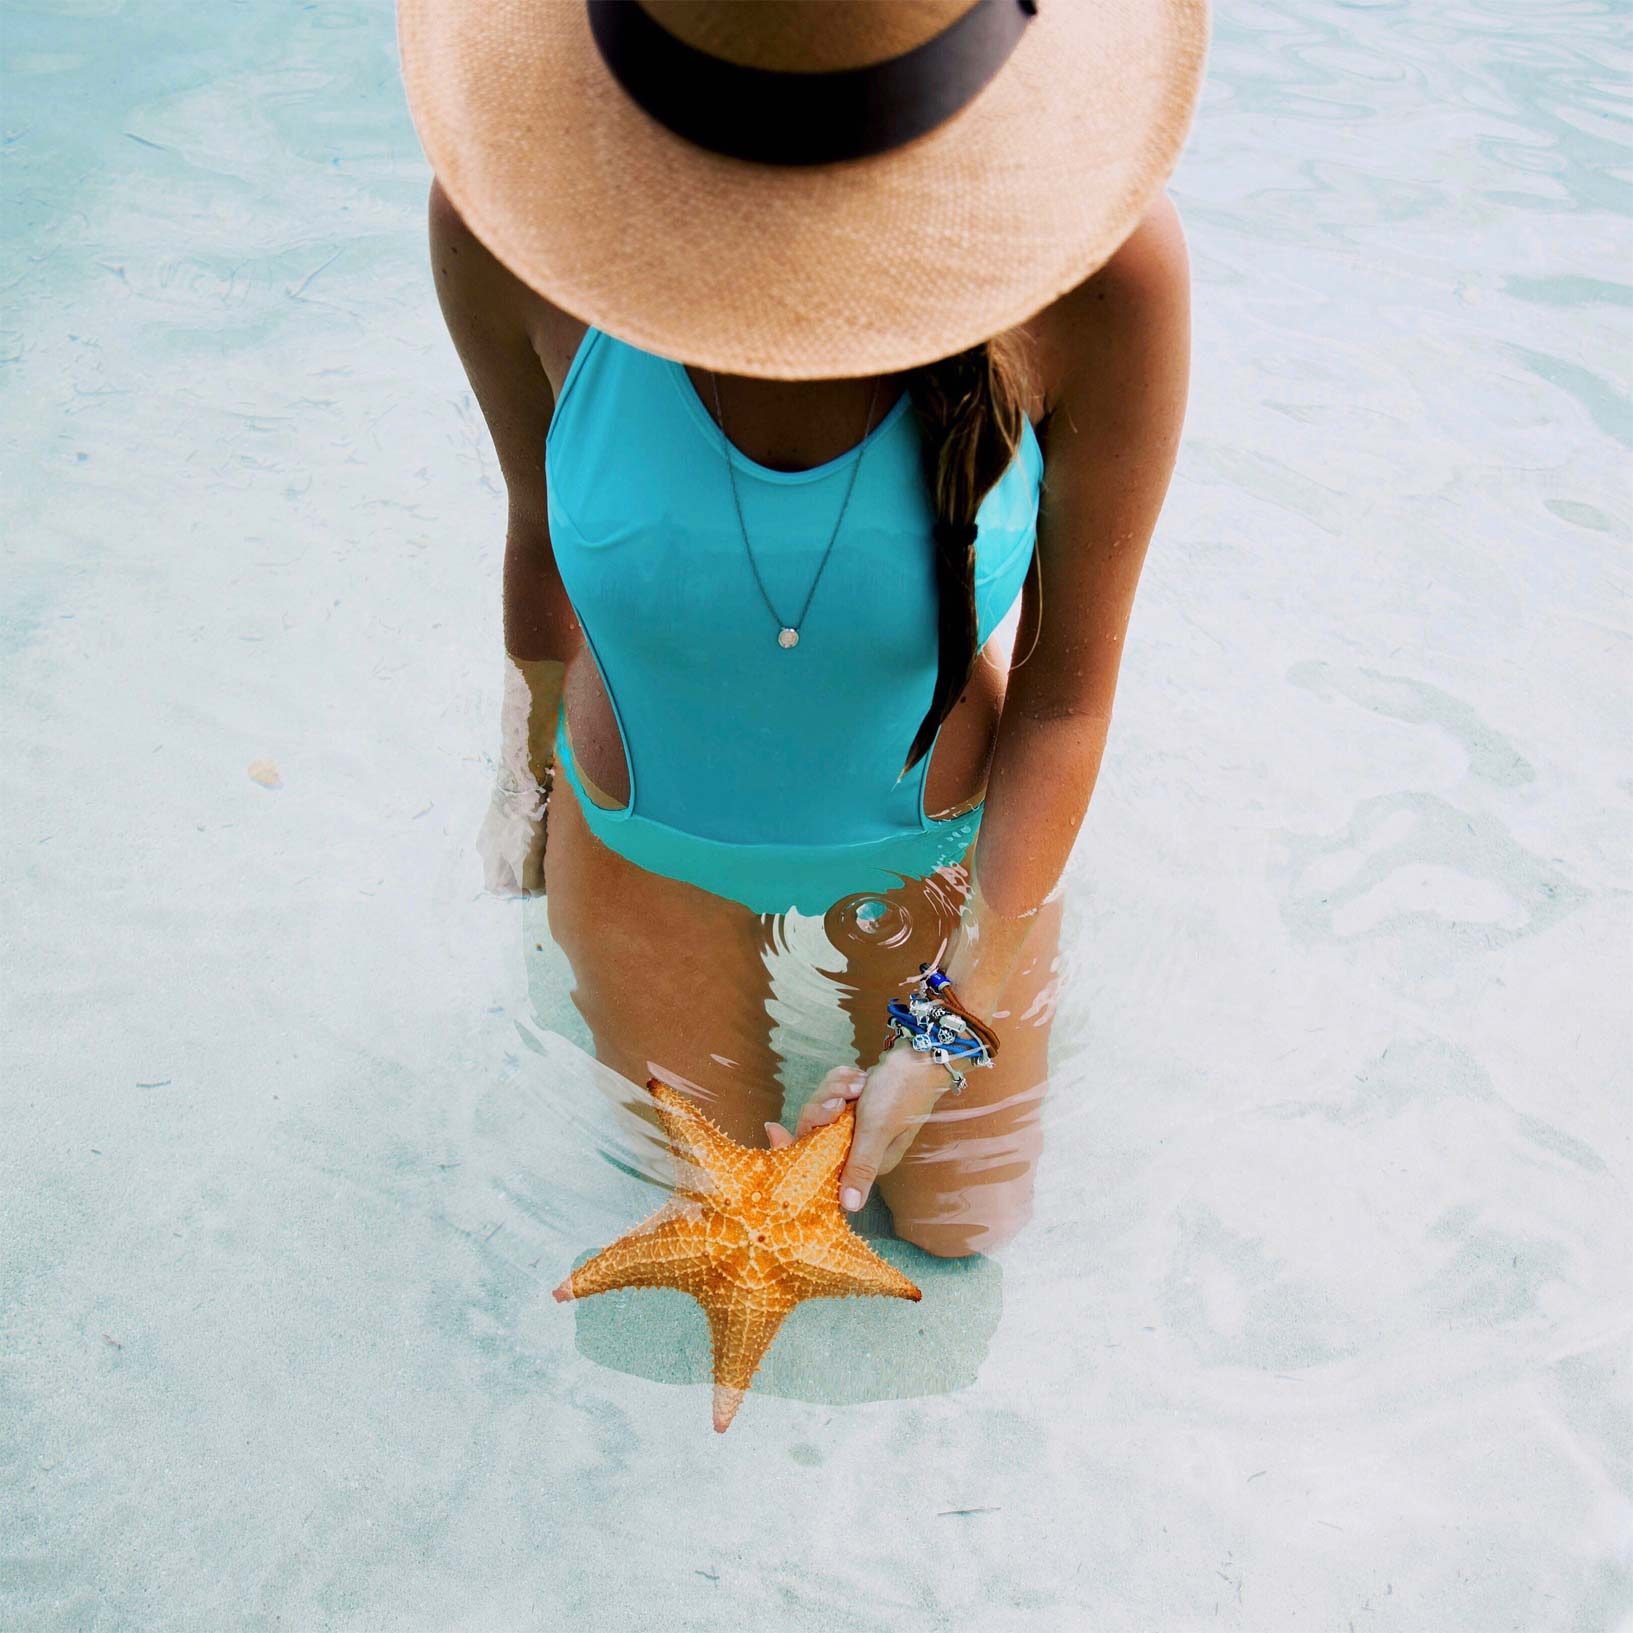 starfish-beach-bocas